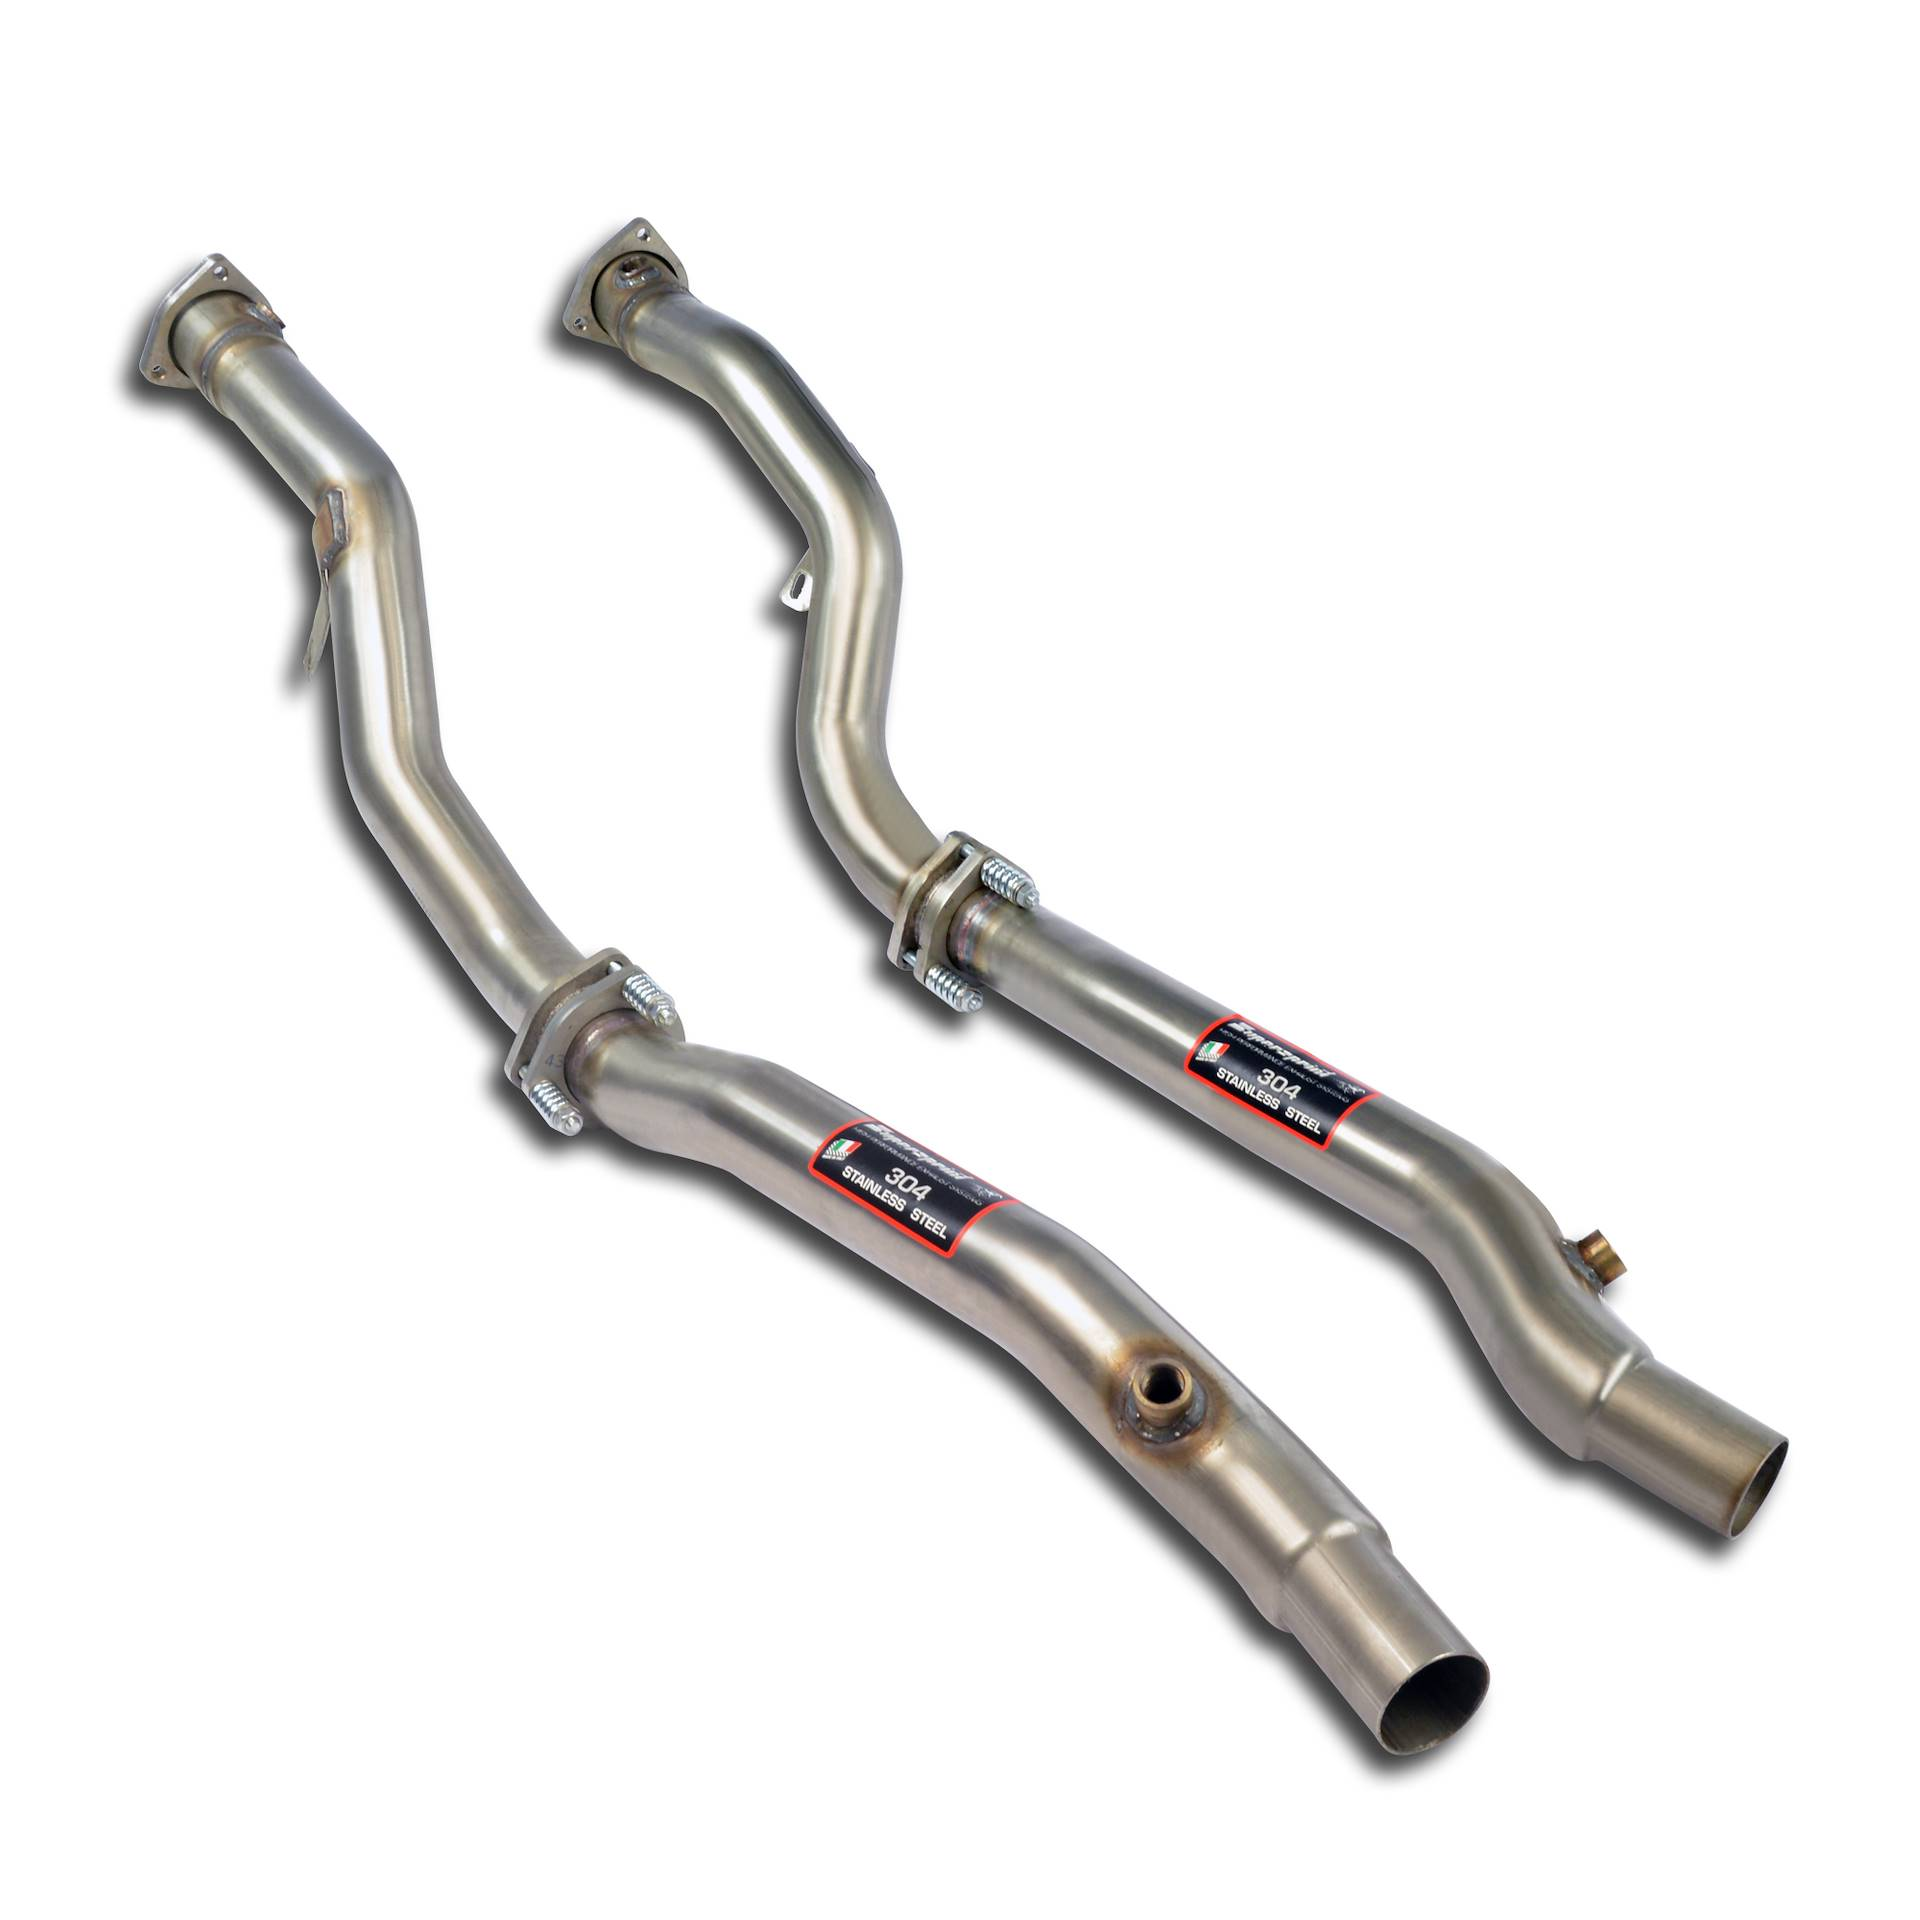 Audi  S / RS - AUDI A6 4B S6 QUATTRO (Sedan + Avant) 4.2i V8 (340Hp) ' 99 ->' 04 Downpipe kit Right + Left<br>(Replaces catalytic converter), performance exhaust systems